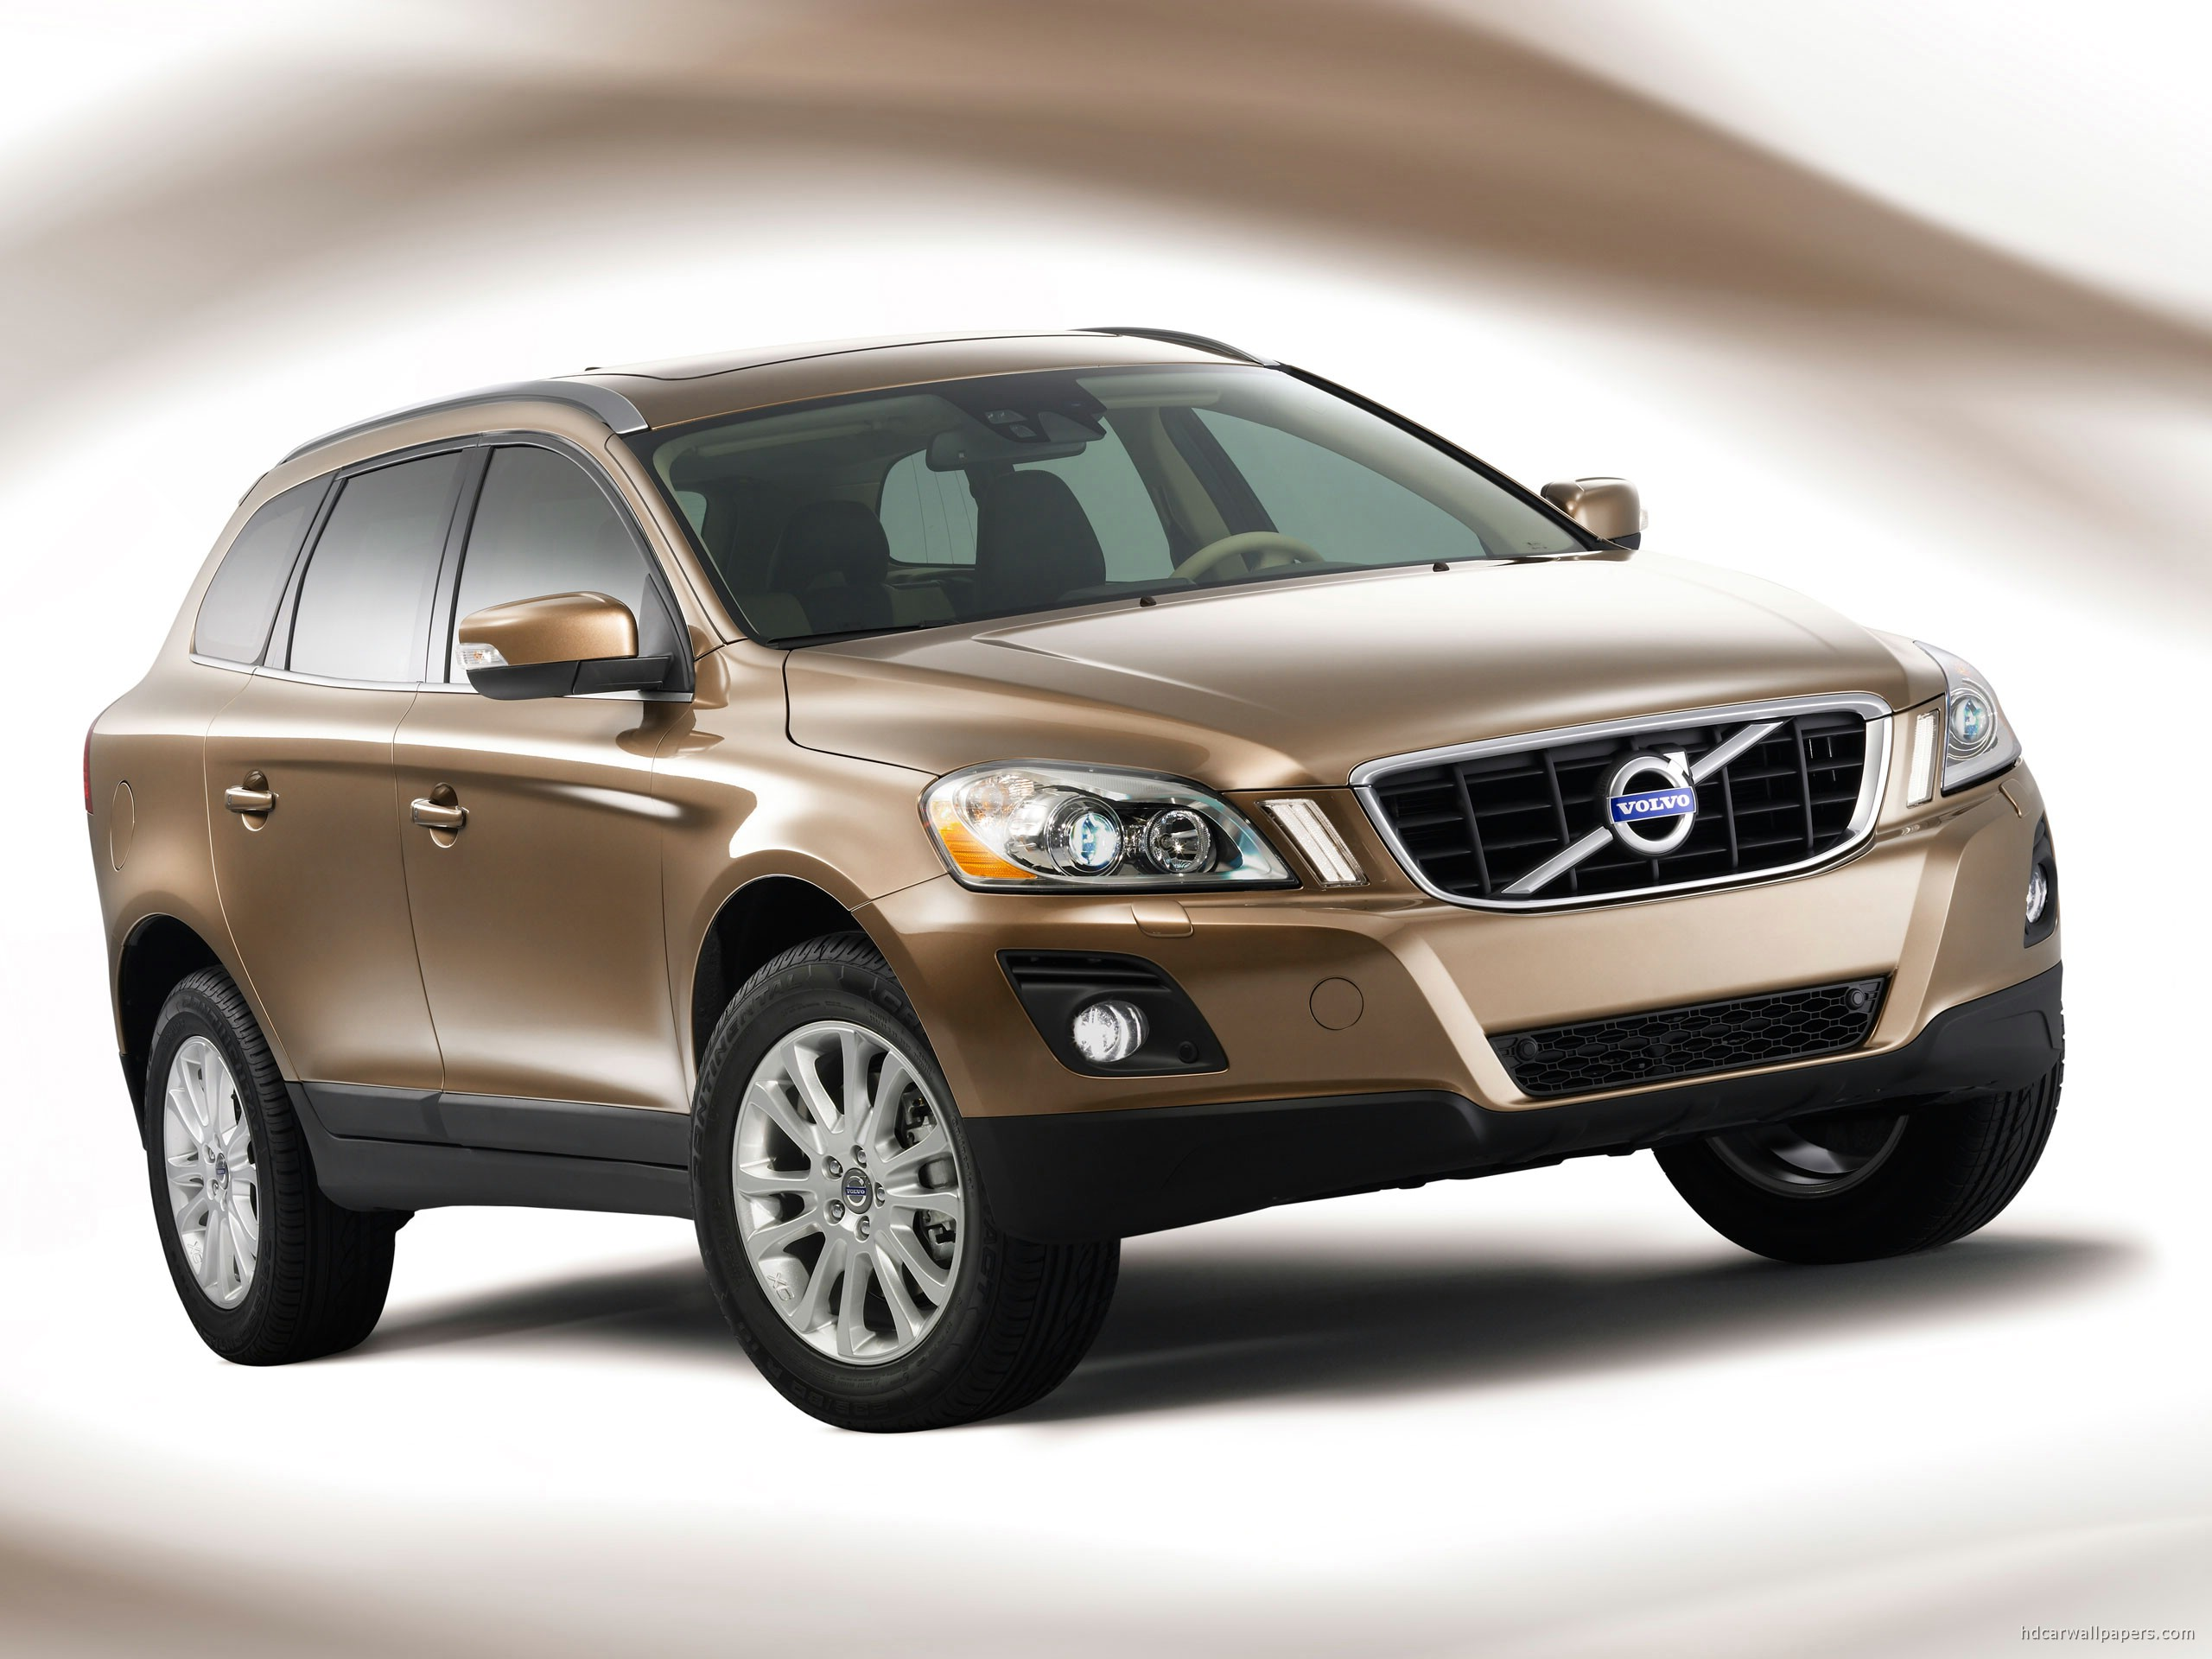 volvo xc60 wallpaper hd car wallpapers. Black Bedroom Furniture Sets. Home Design Ideas